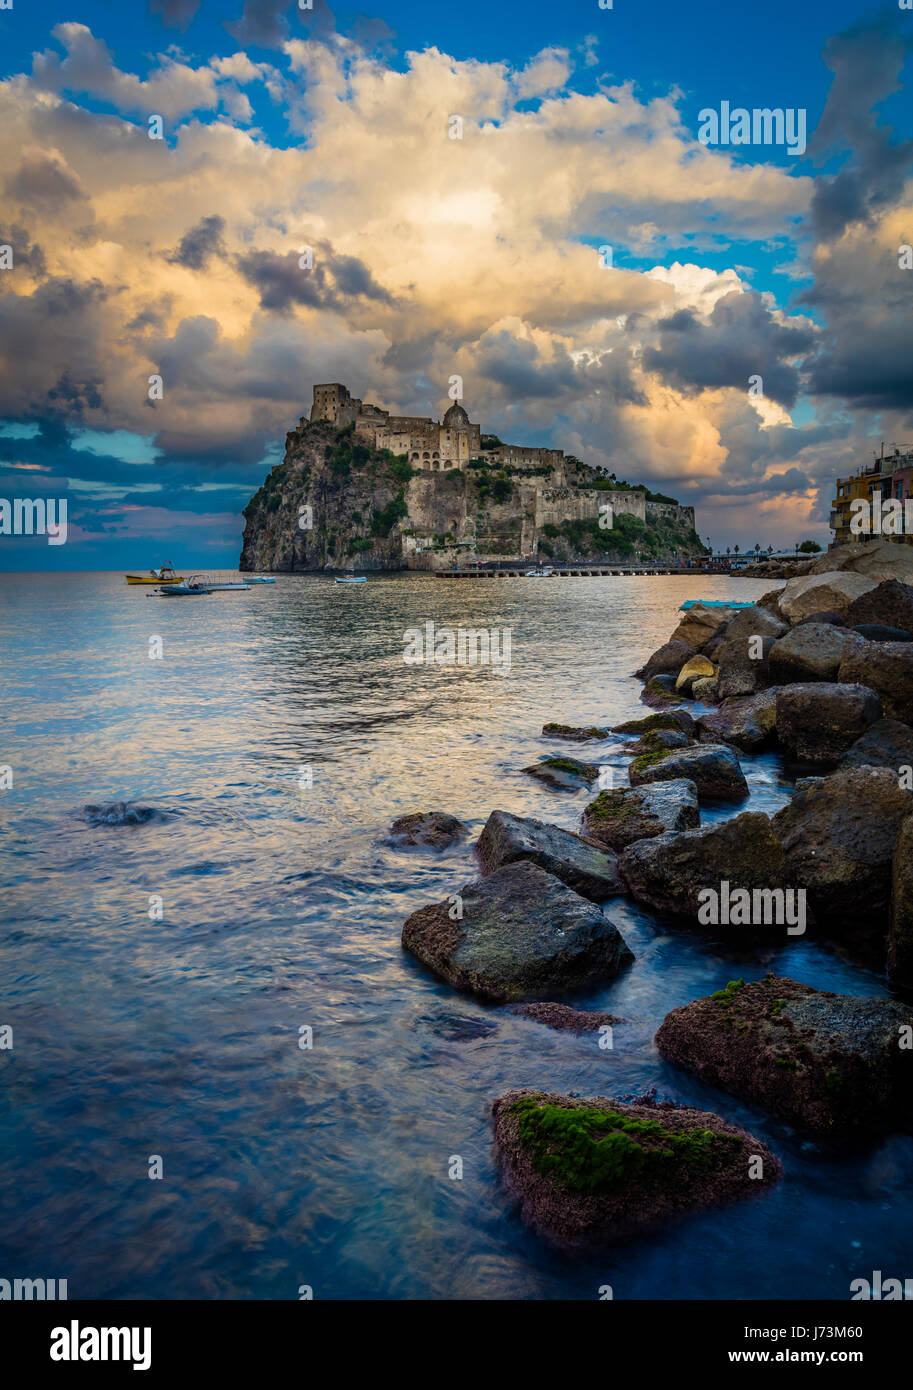 Castello Aragonese is a medieval castle next to Ischia (one of the Phlegraean Islands), at the northern end of the - Stock Image